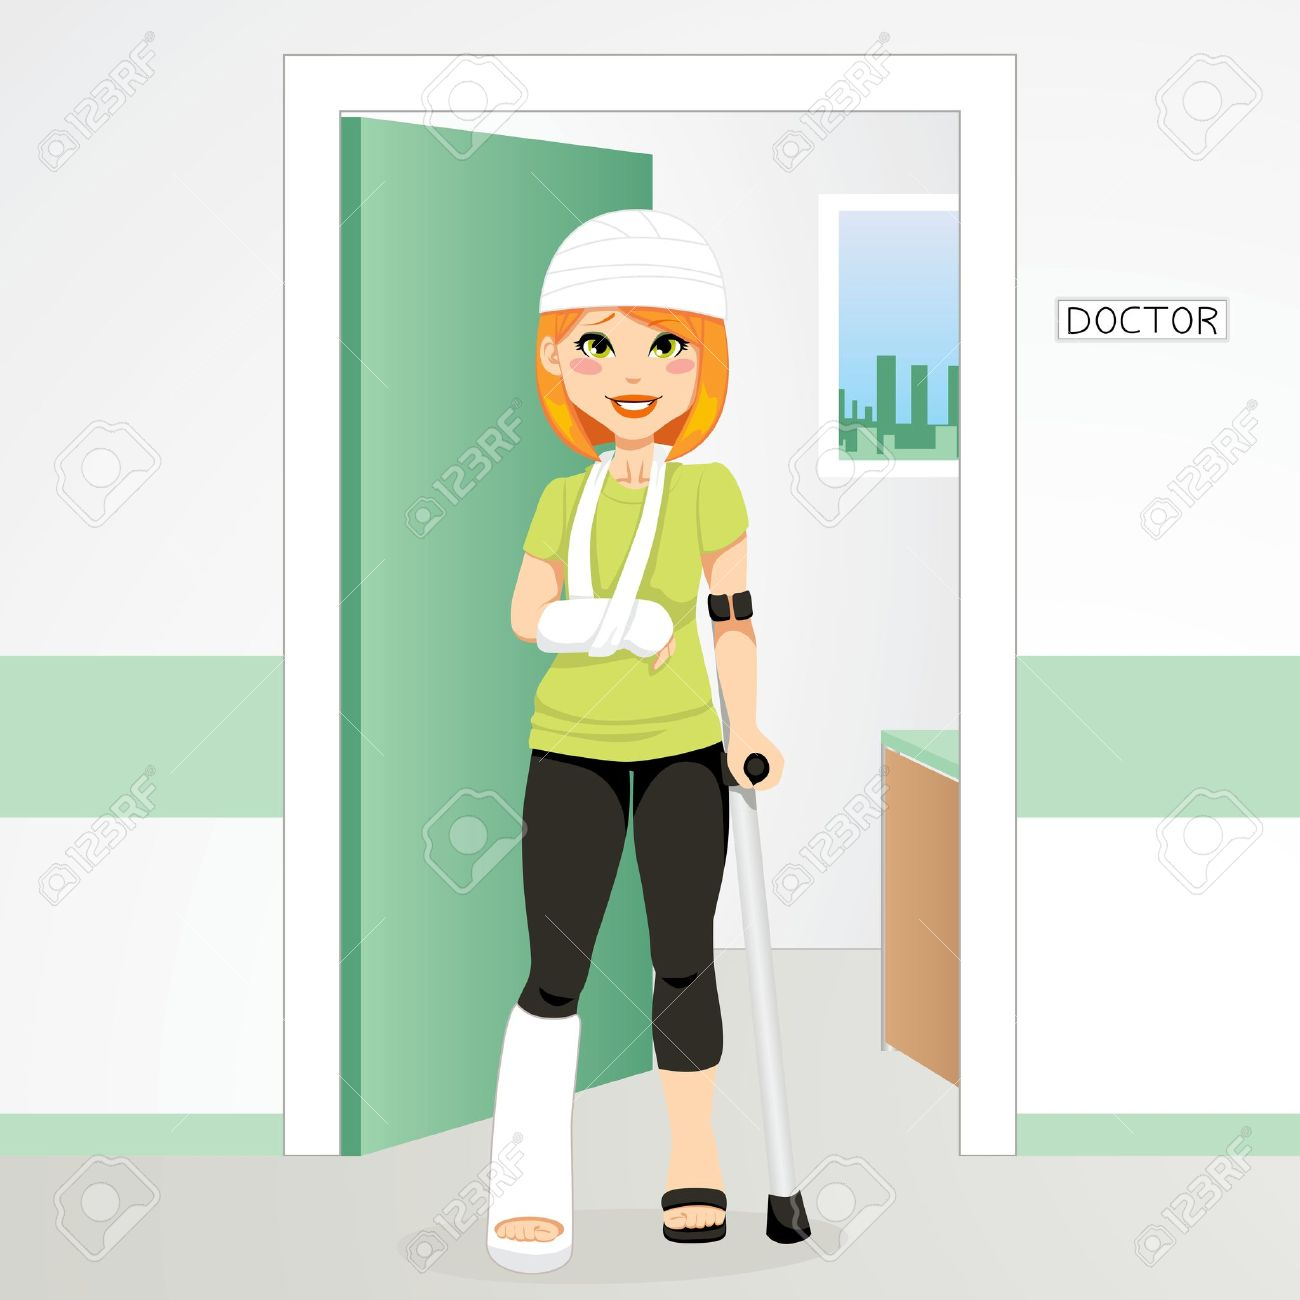 Injured redhair woman having head bandage, broken ankle and wrist cast walking with crutch Stock Vector - 11272584